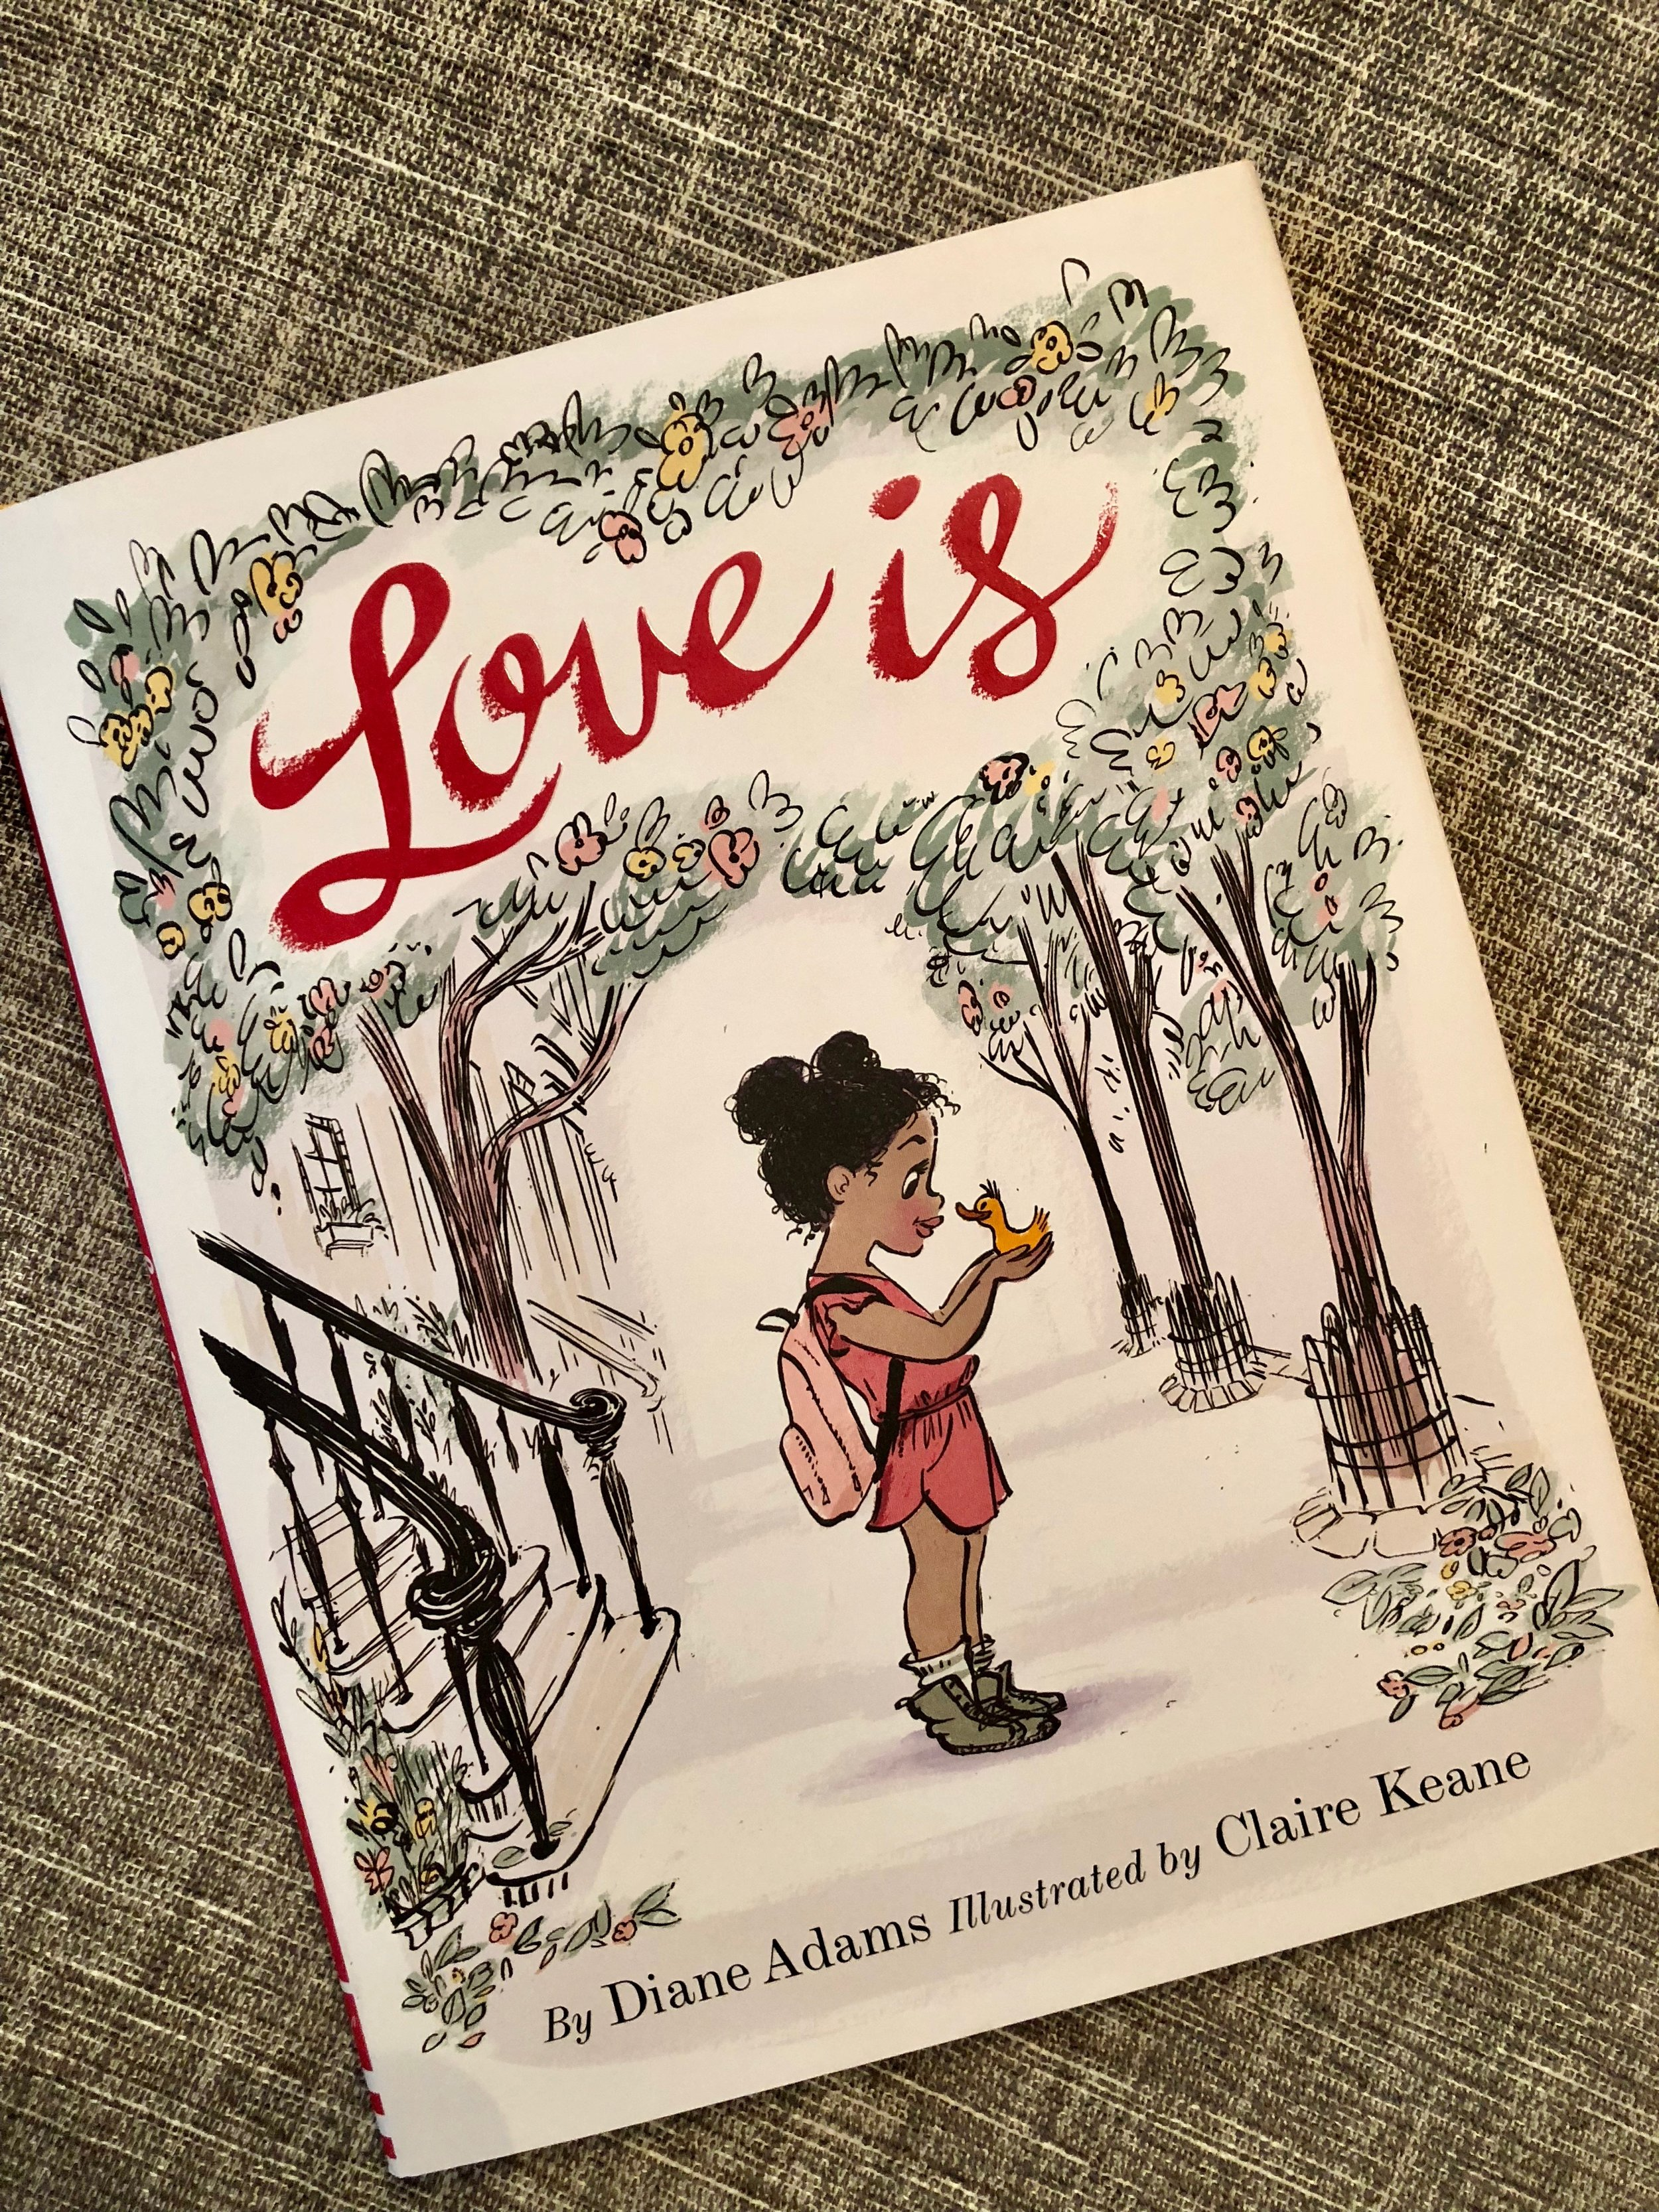 Again, the illustrations are to die for! Sophisticated and stylish but so appropriate for kids. Reminds me a little bit of the original, first Amelia Bedelia book!